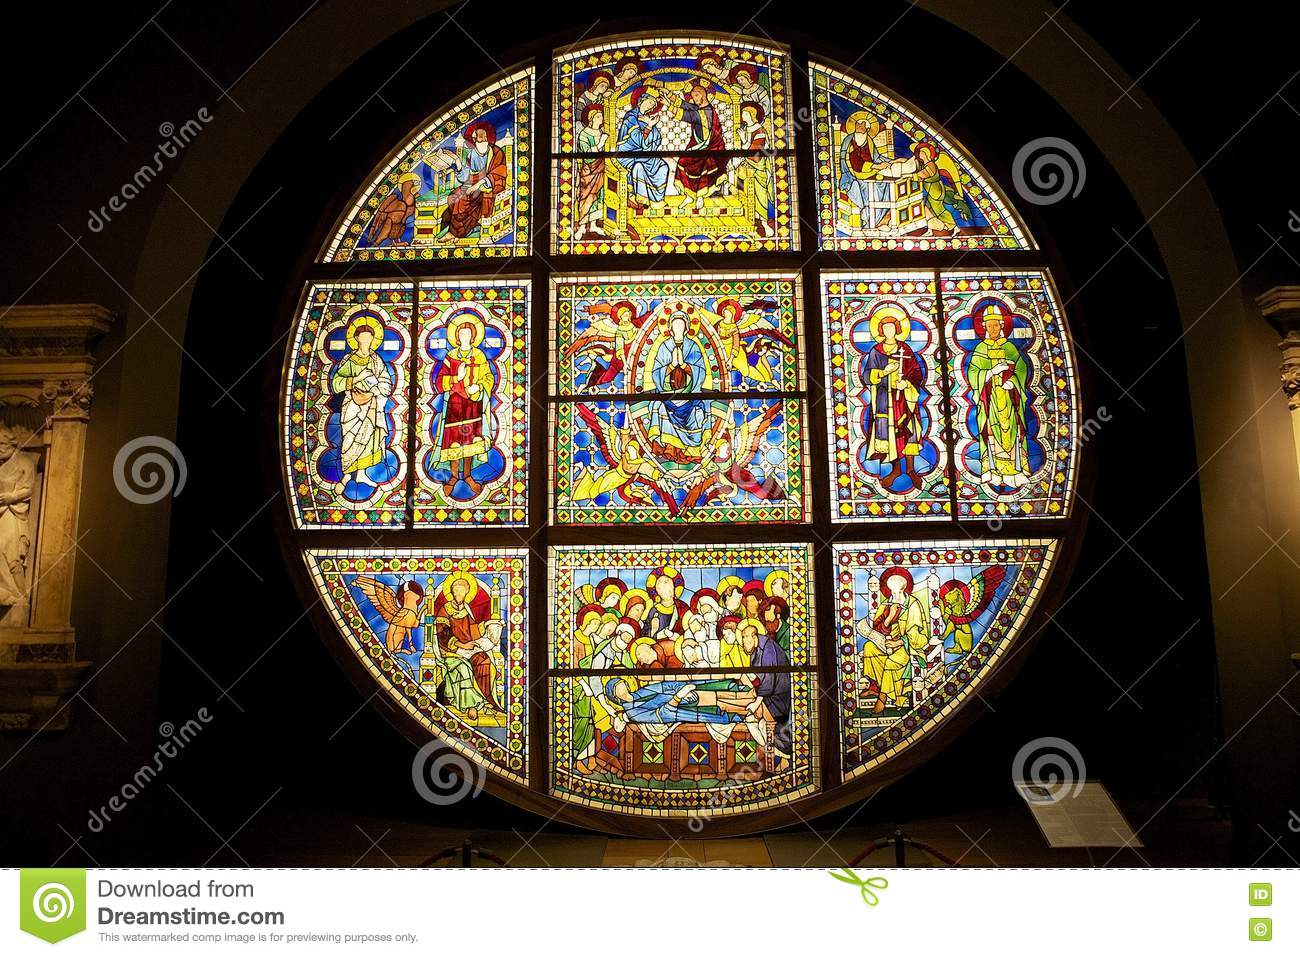 Stained glass window from the Siena Cathedral, Tuscany, Italy